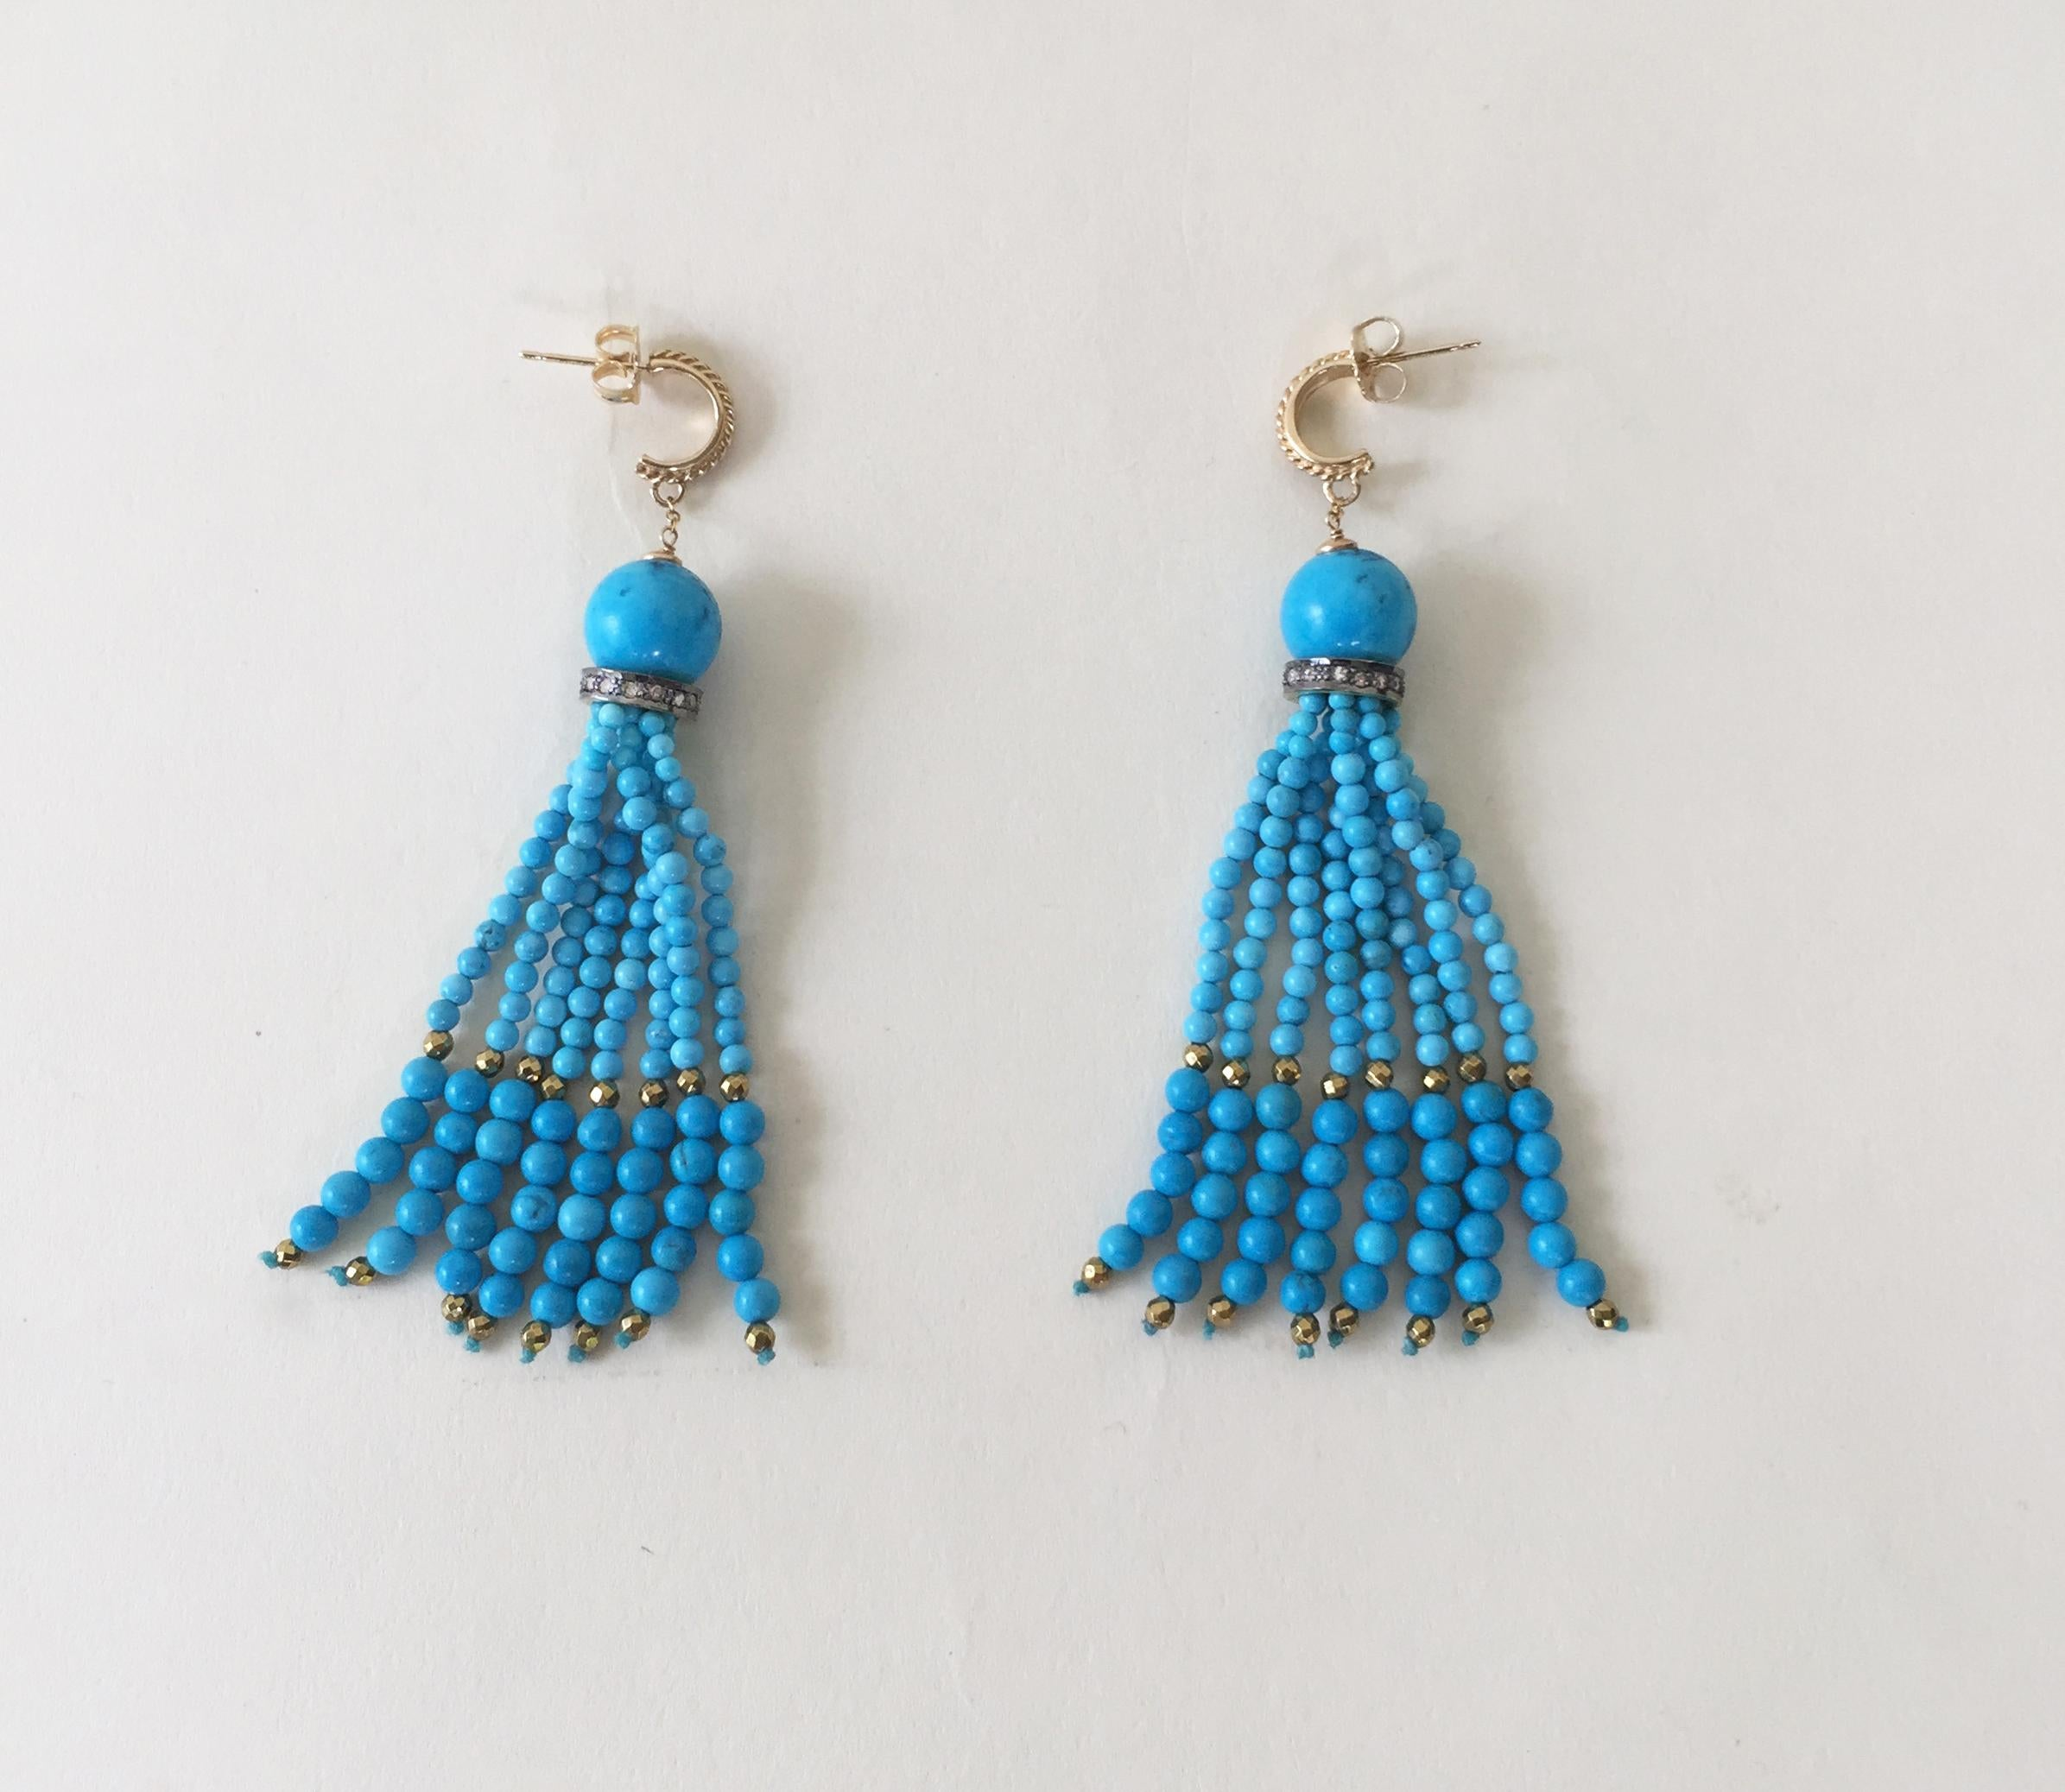 bae01a6ee Turquoise Tassel Earrings with Diamonds and Vermeil Beads with 14 Karat  Gold at 1stdibs